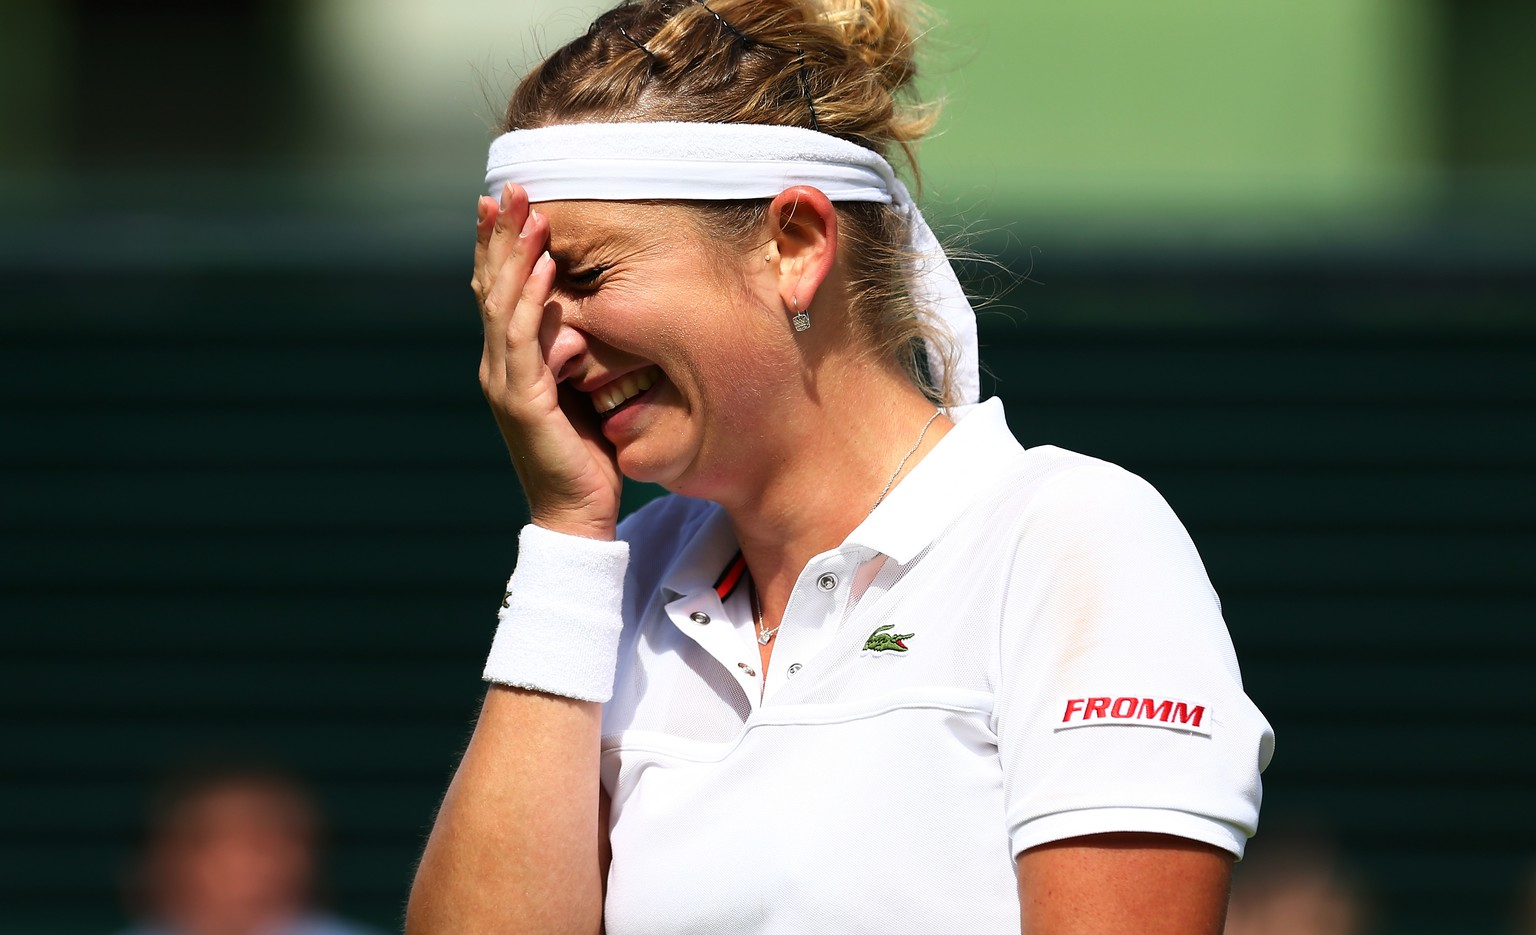 LONDON, ENGLAND - JULY 06:  Timea Bacsinszky of Switzerland shows her emotions after victory in her Ladies' Singles Fourth Round match against Monica Niculescu of Romania  during day seven of the Wimbledon Lawn Tennis Championships at the All England Lawn Tennis and Croquet Club on July 6, 2015 in London, England.  (Photo by Clive Brunskill/Getty Images)